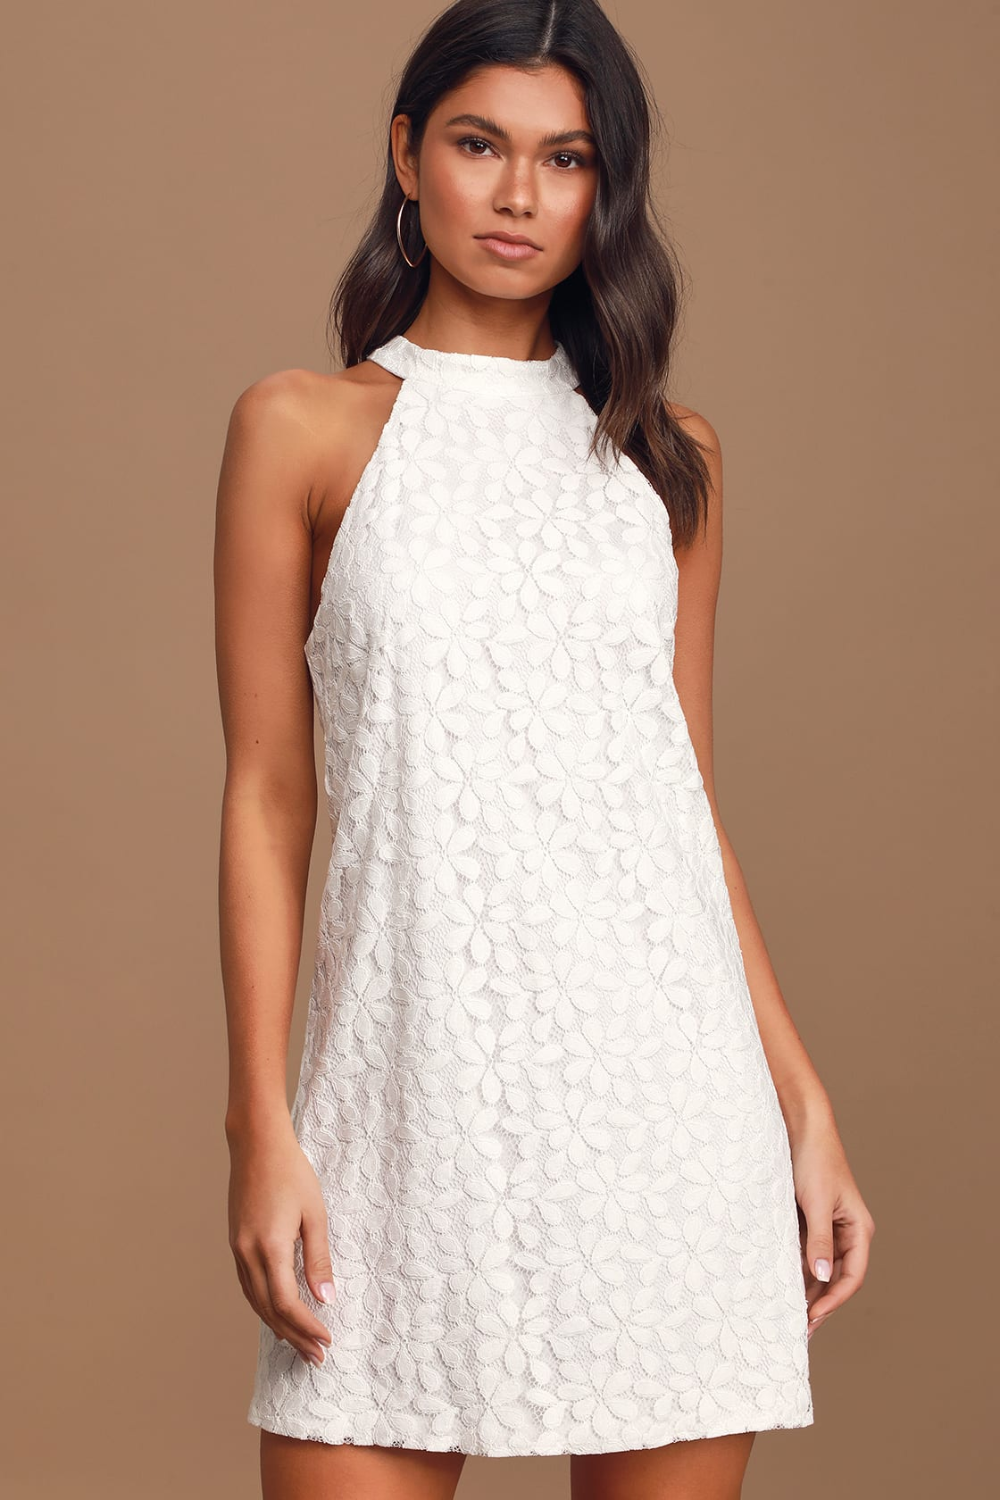 All My Adoration White Lace Halter Shift Dress Lace Shift Dress Shift Dress Dresses [ 1500 x 1000 Pixel ]